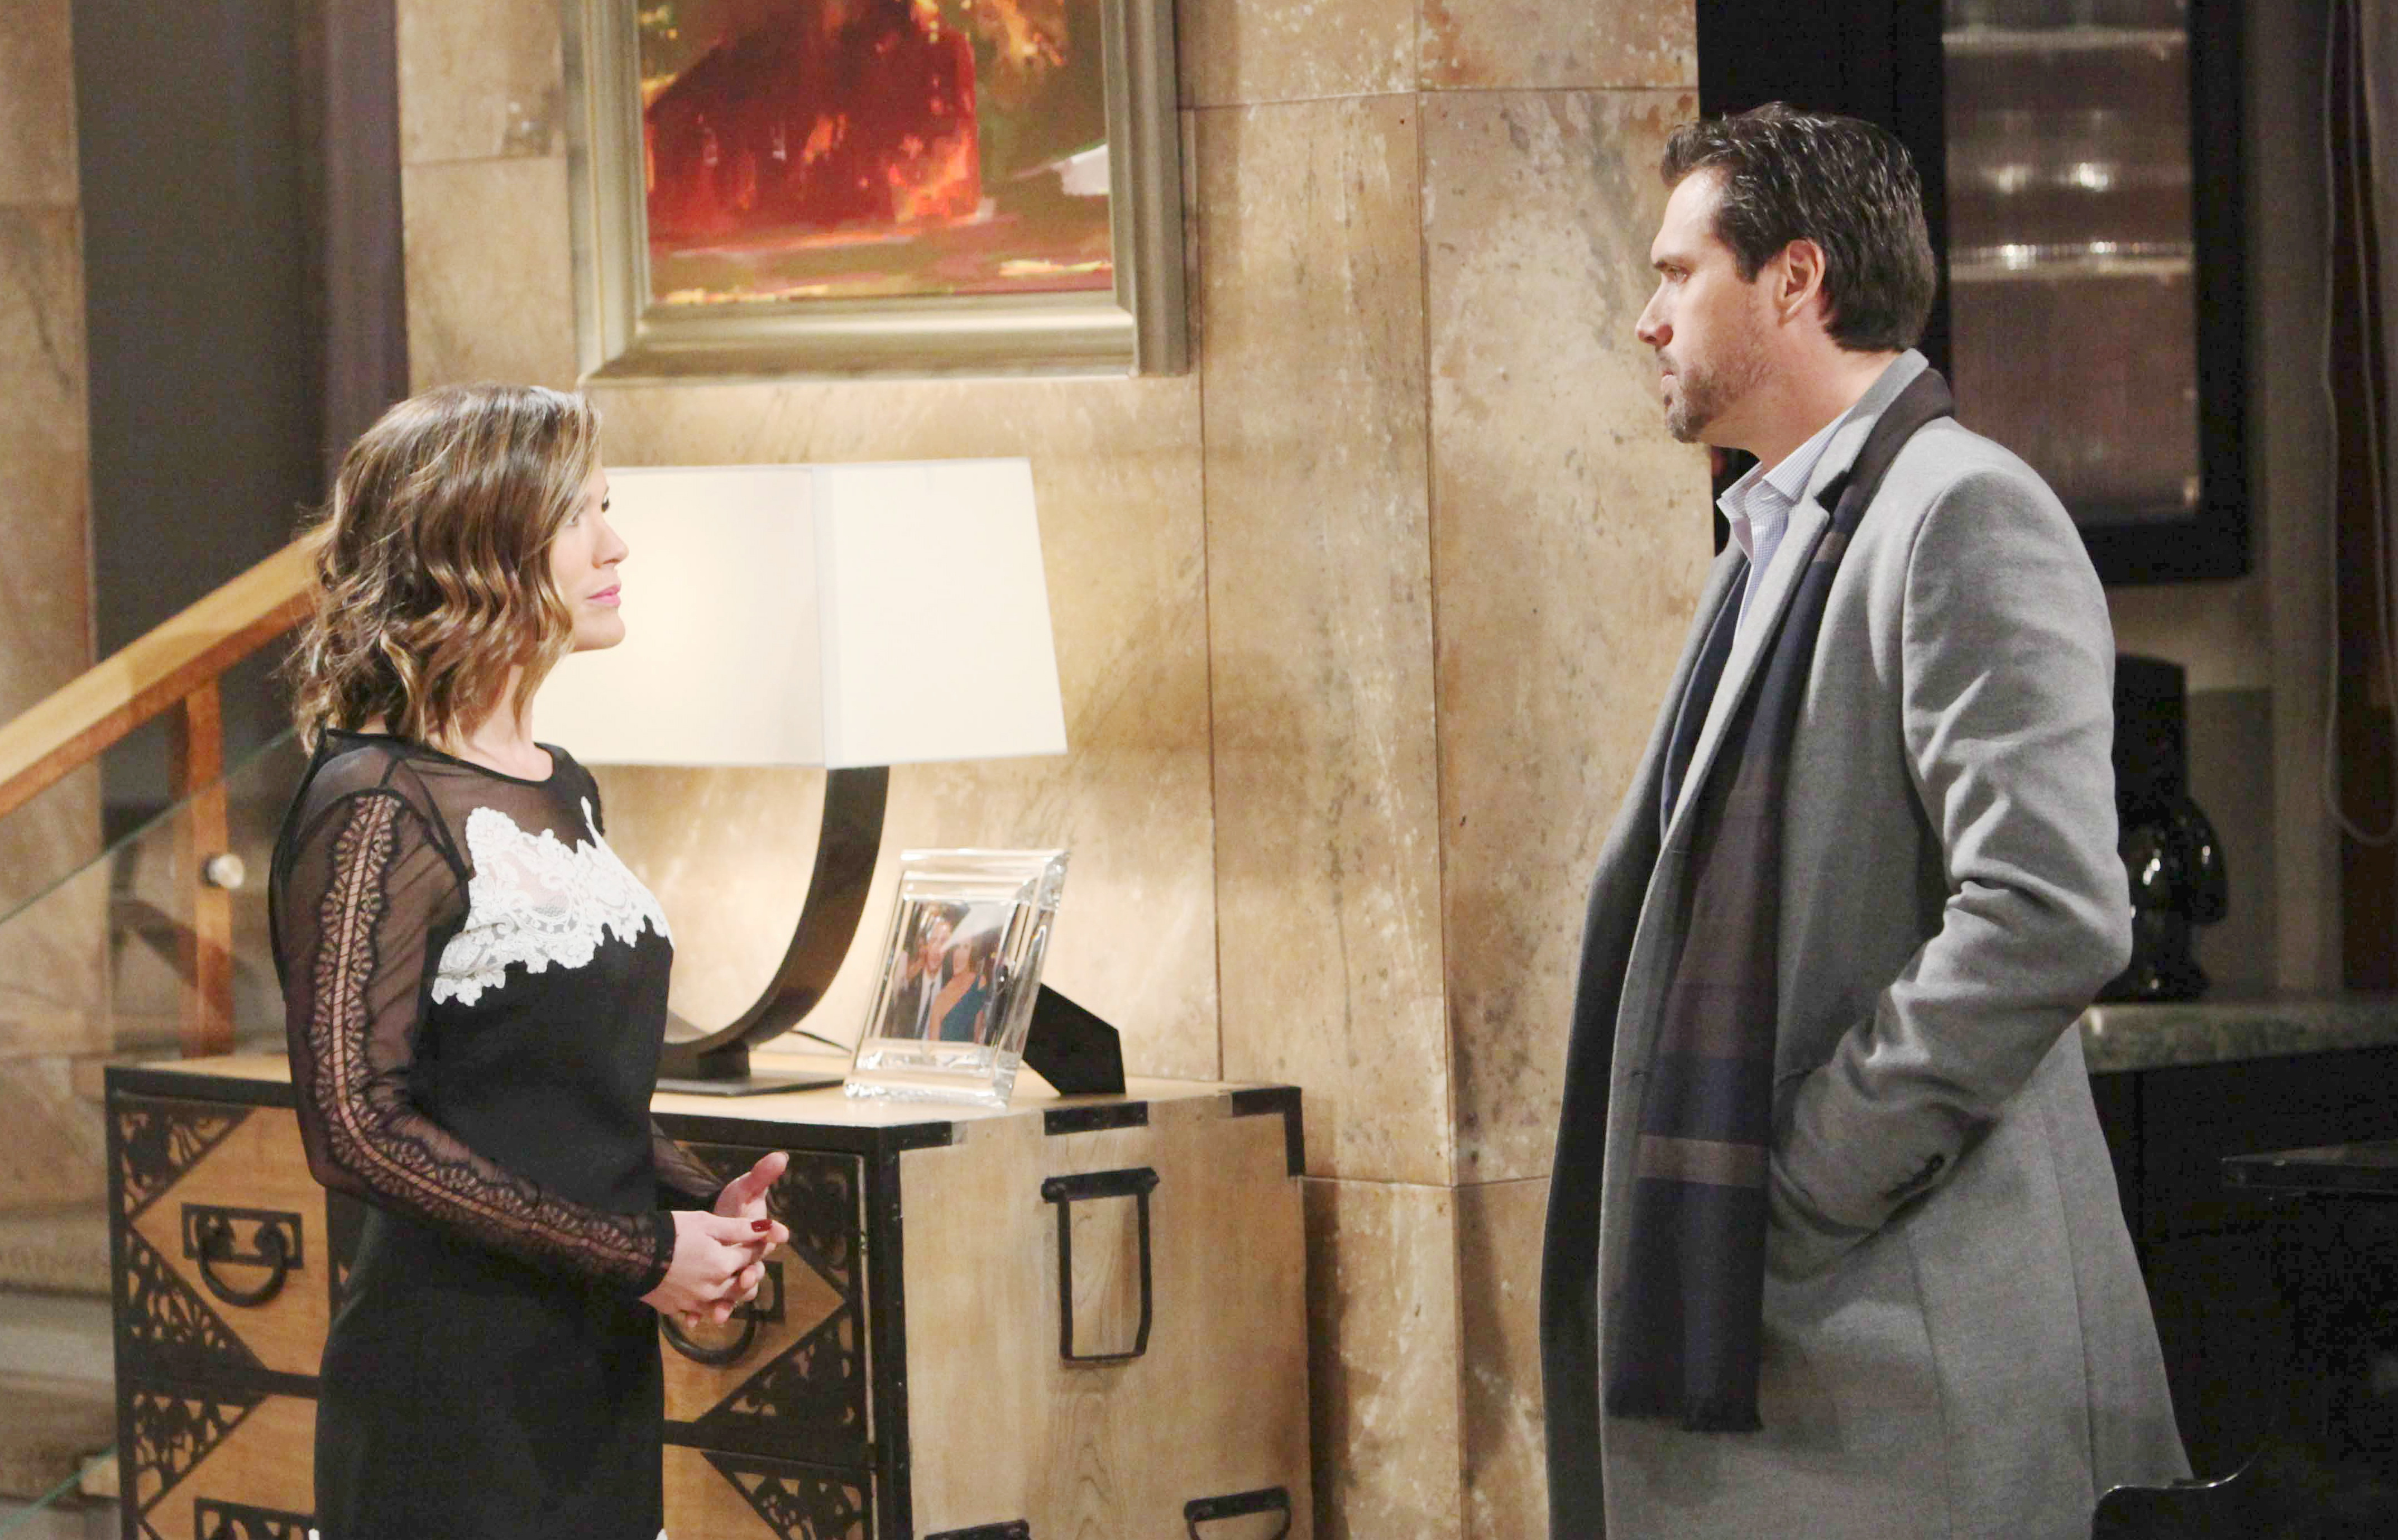 The Young and the Restless Recap: Feb 27 -Mar 3 *Spoiler Alert*